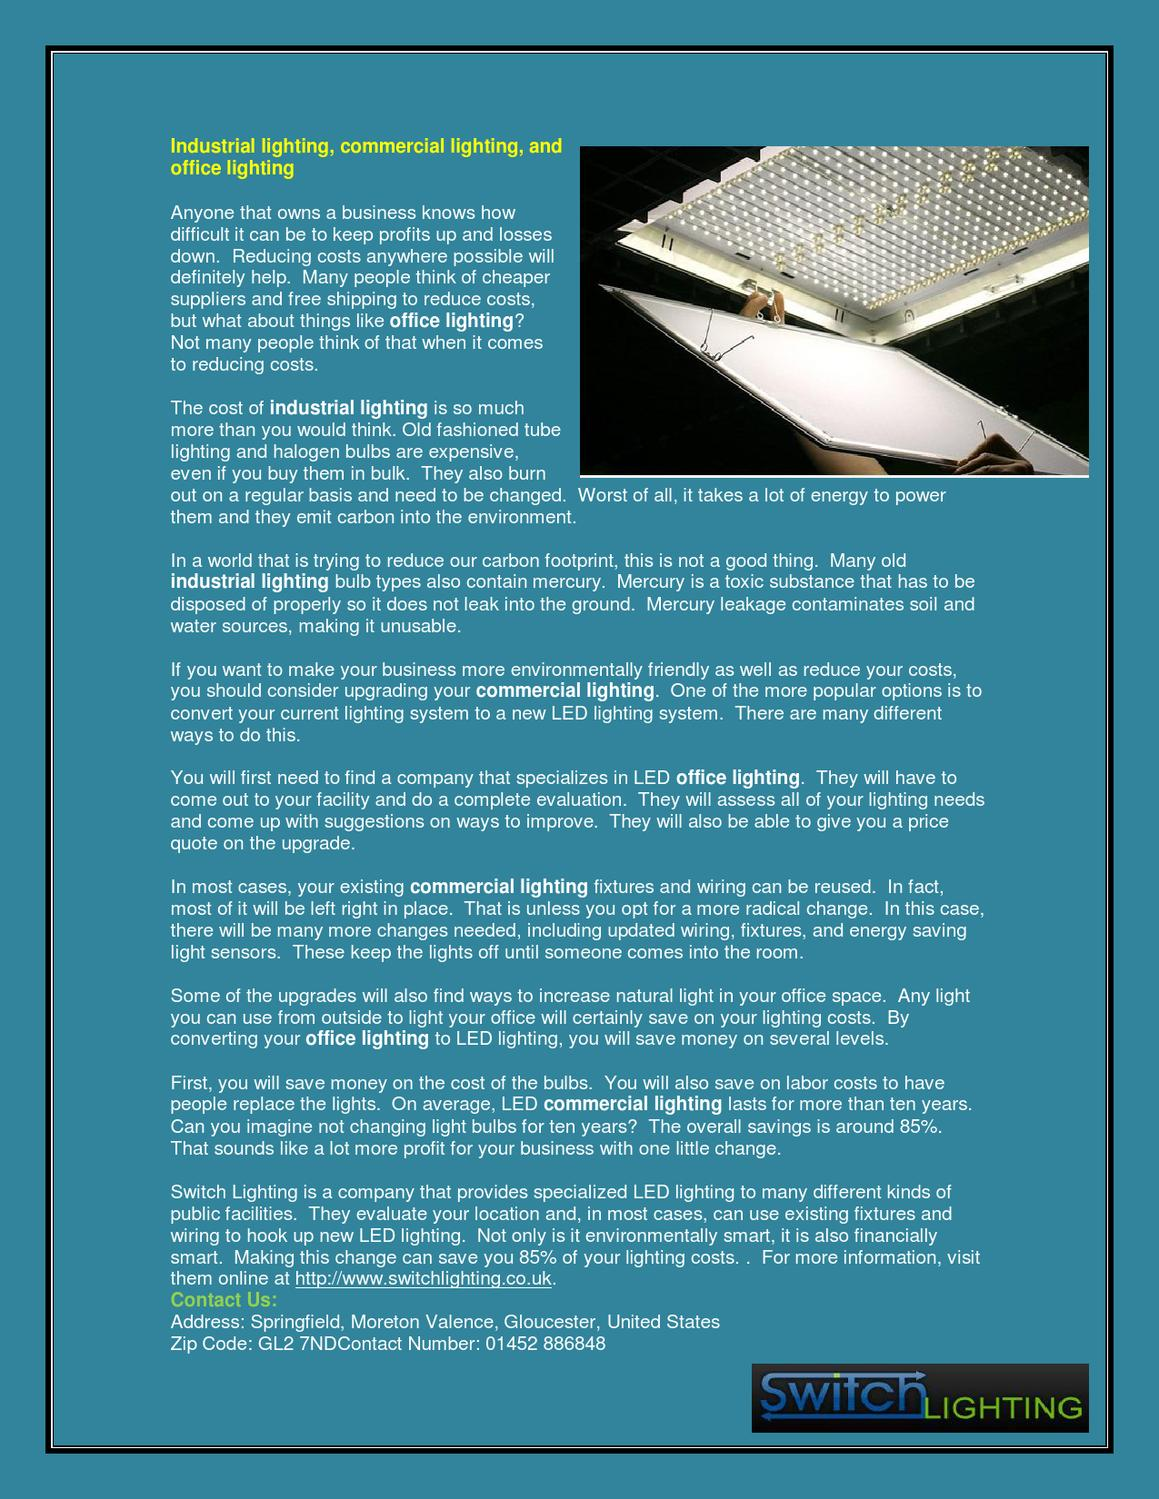 Industrial Lighting, Commercial Lighting, And Office Lighting By Wayne  Graham   Issuu